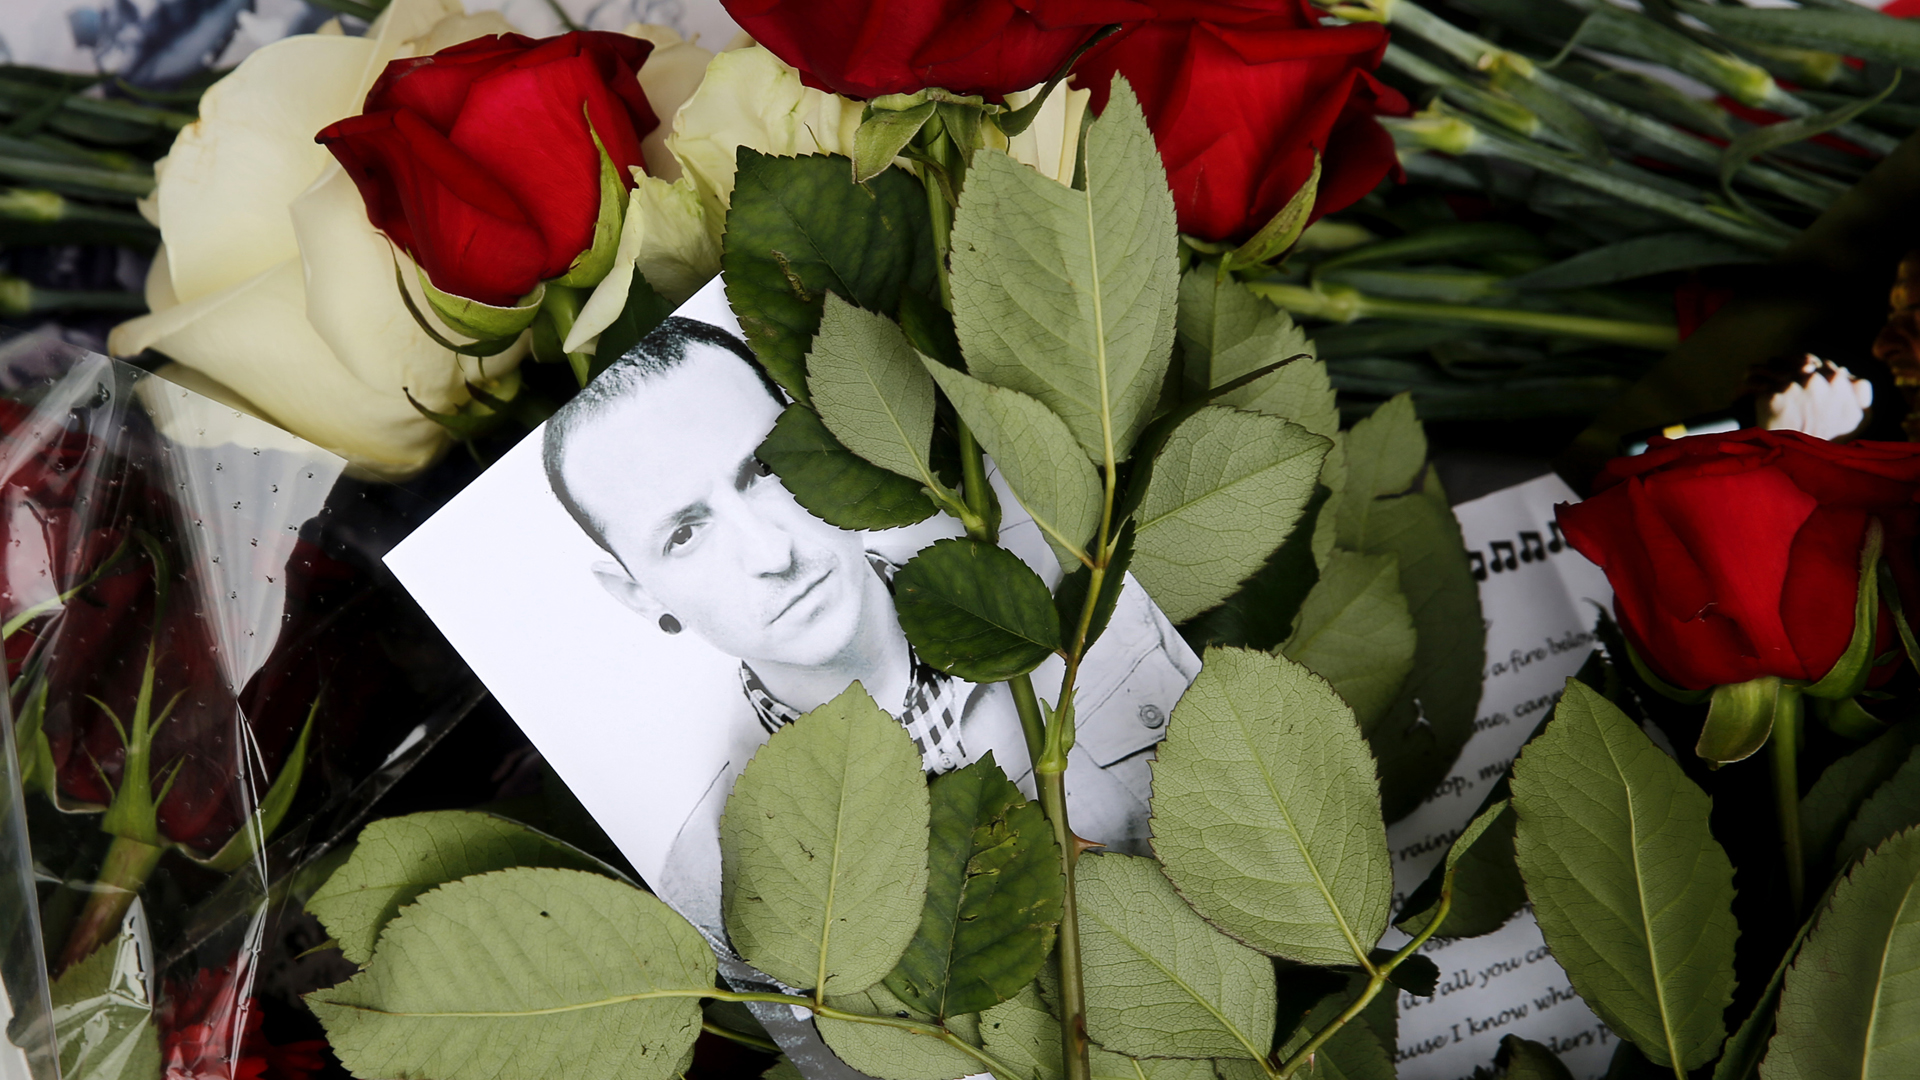 Red roses and a picture of Linkin Park frontman Chester Bennington were laid in front of the US embassy in central Moscow, Russia, on July 22, 2017. (Credit:MAXIM ZMEYEV/AFP/Getty Images)